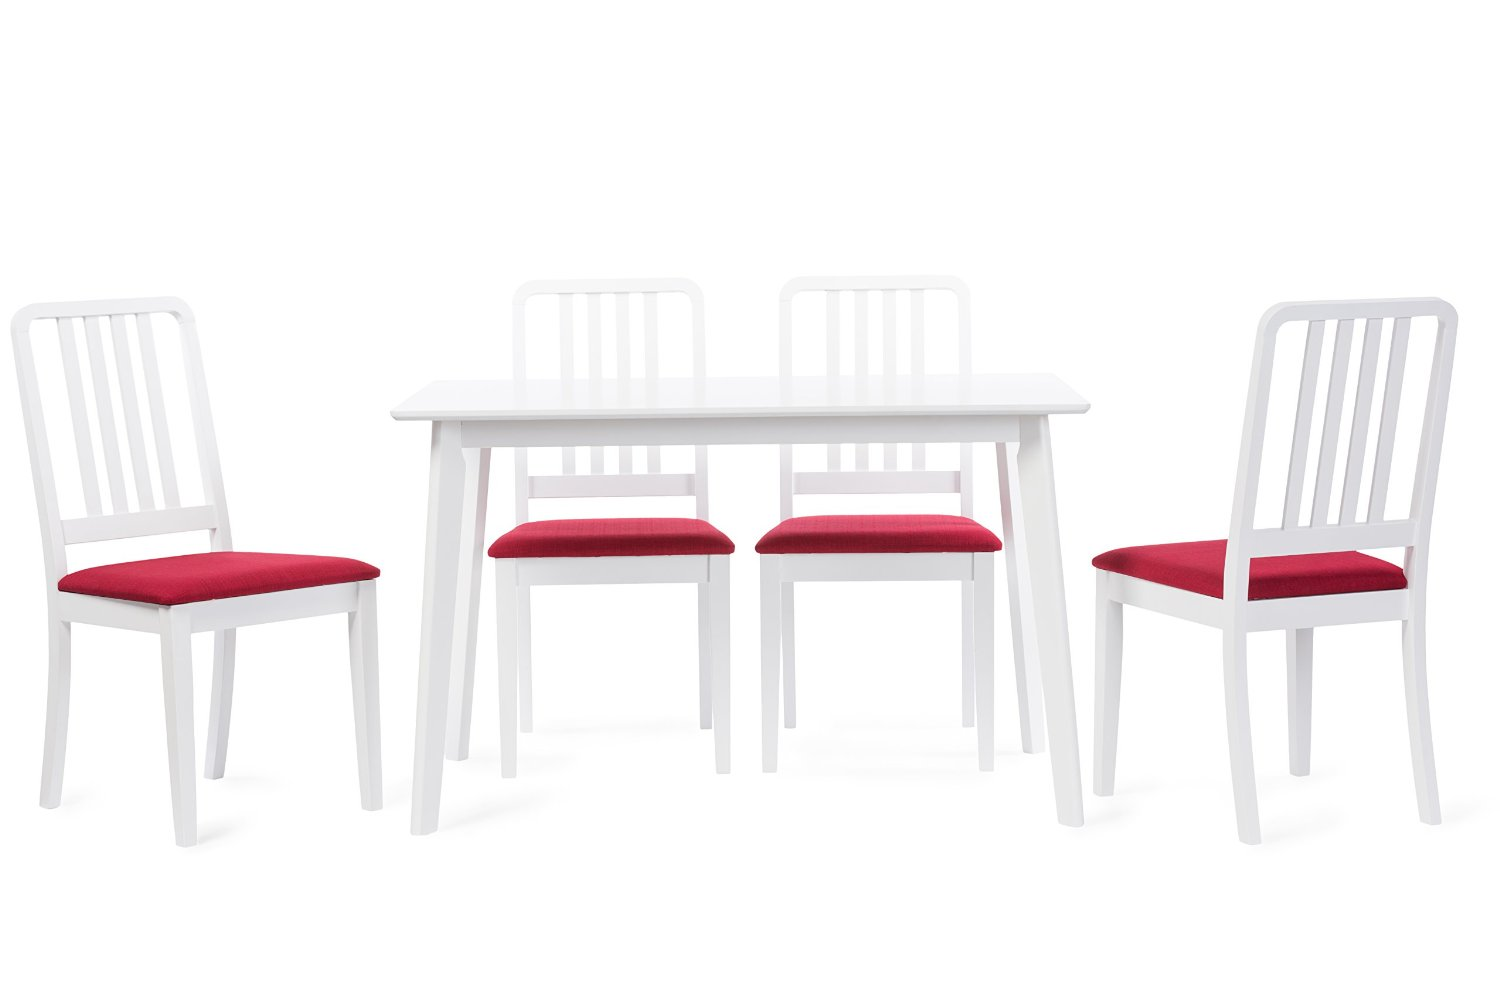 Baxton Studio Jasmine Mid-Century Modern 5 Piece White Wood Dining Set with Red Upholstered Dining Chair